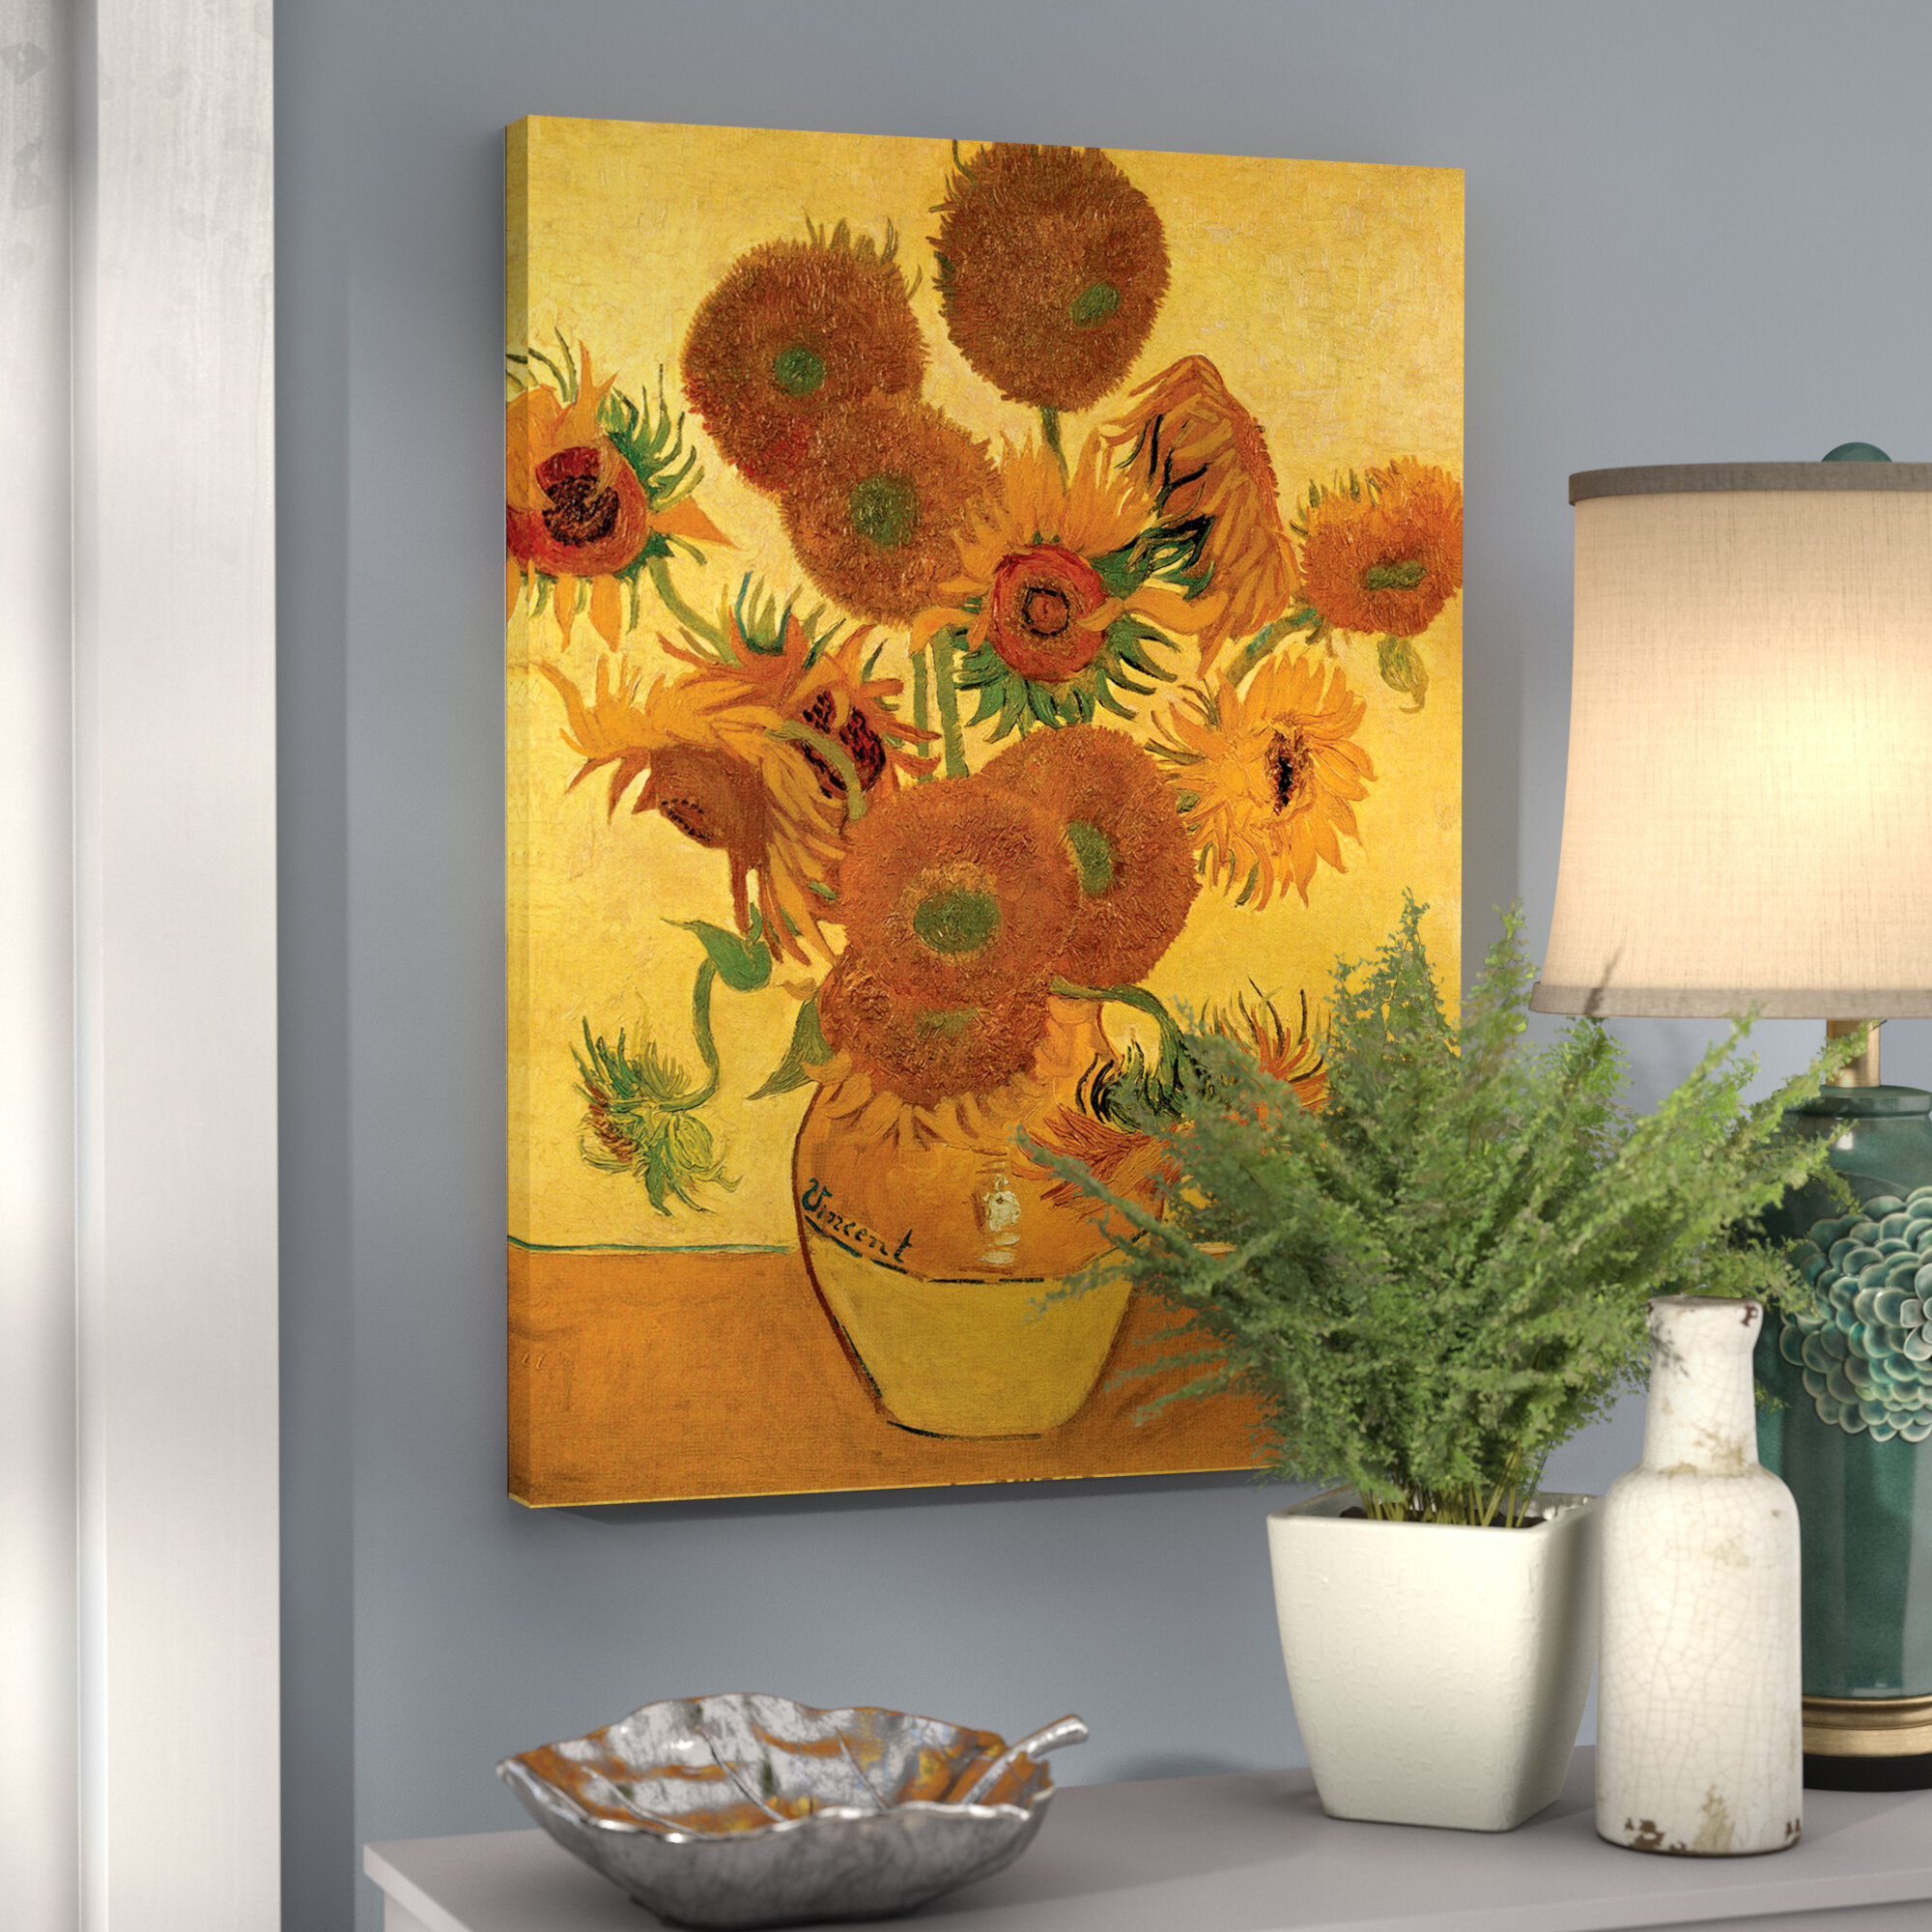 Alcott hill vase with fifteen sunflowers by vincent van gogh alcott hill vase with fifteen sunflowers by vincent van gogh painting print on canvas reviews wayfair reviewsmspy